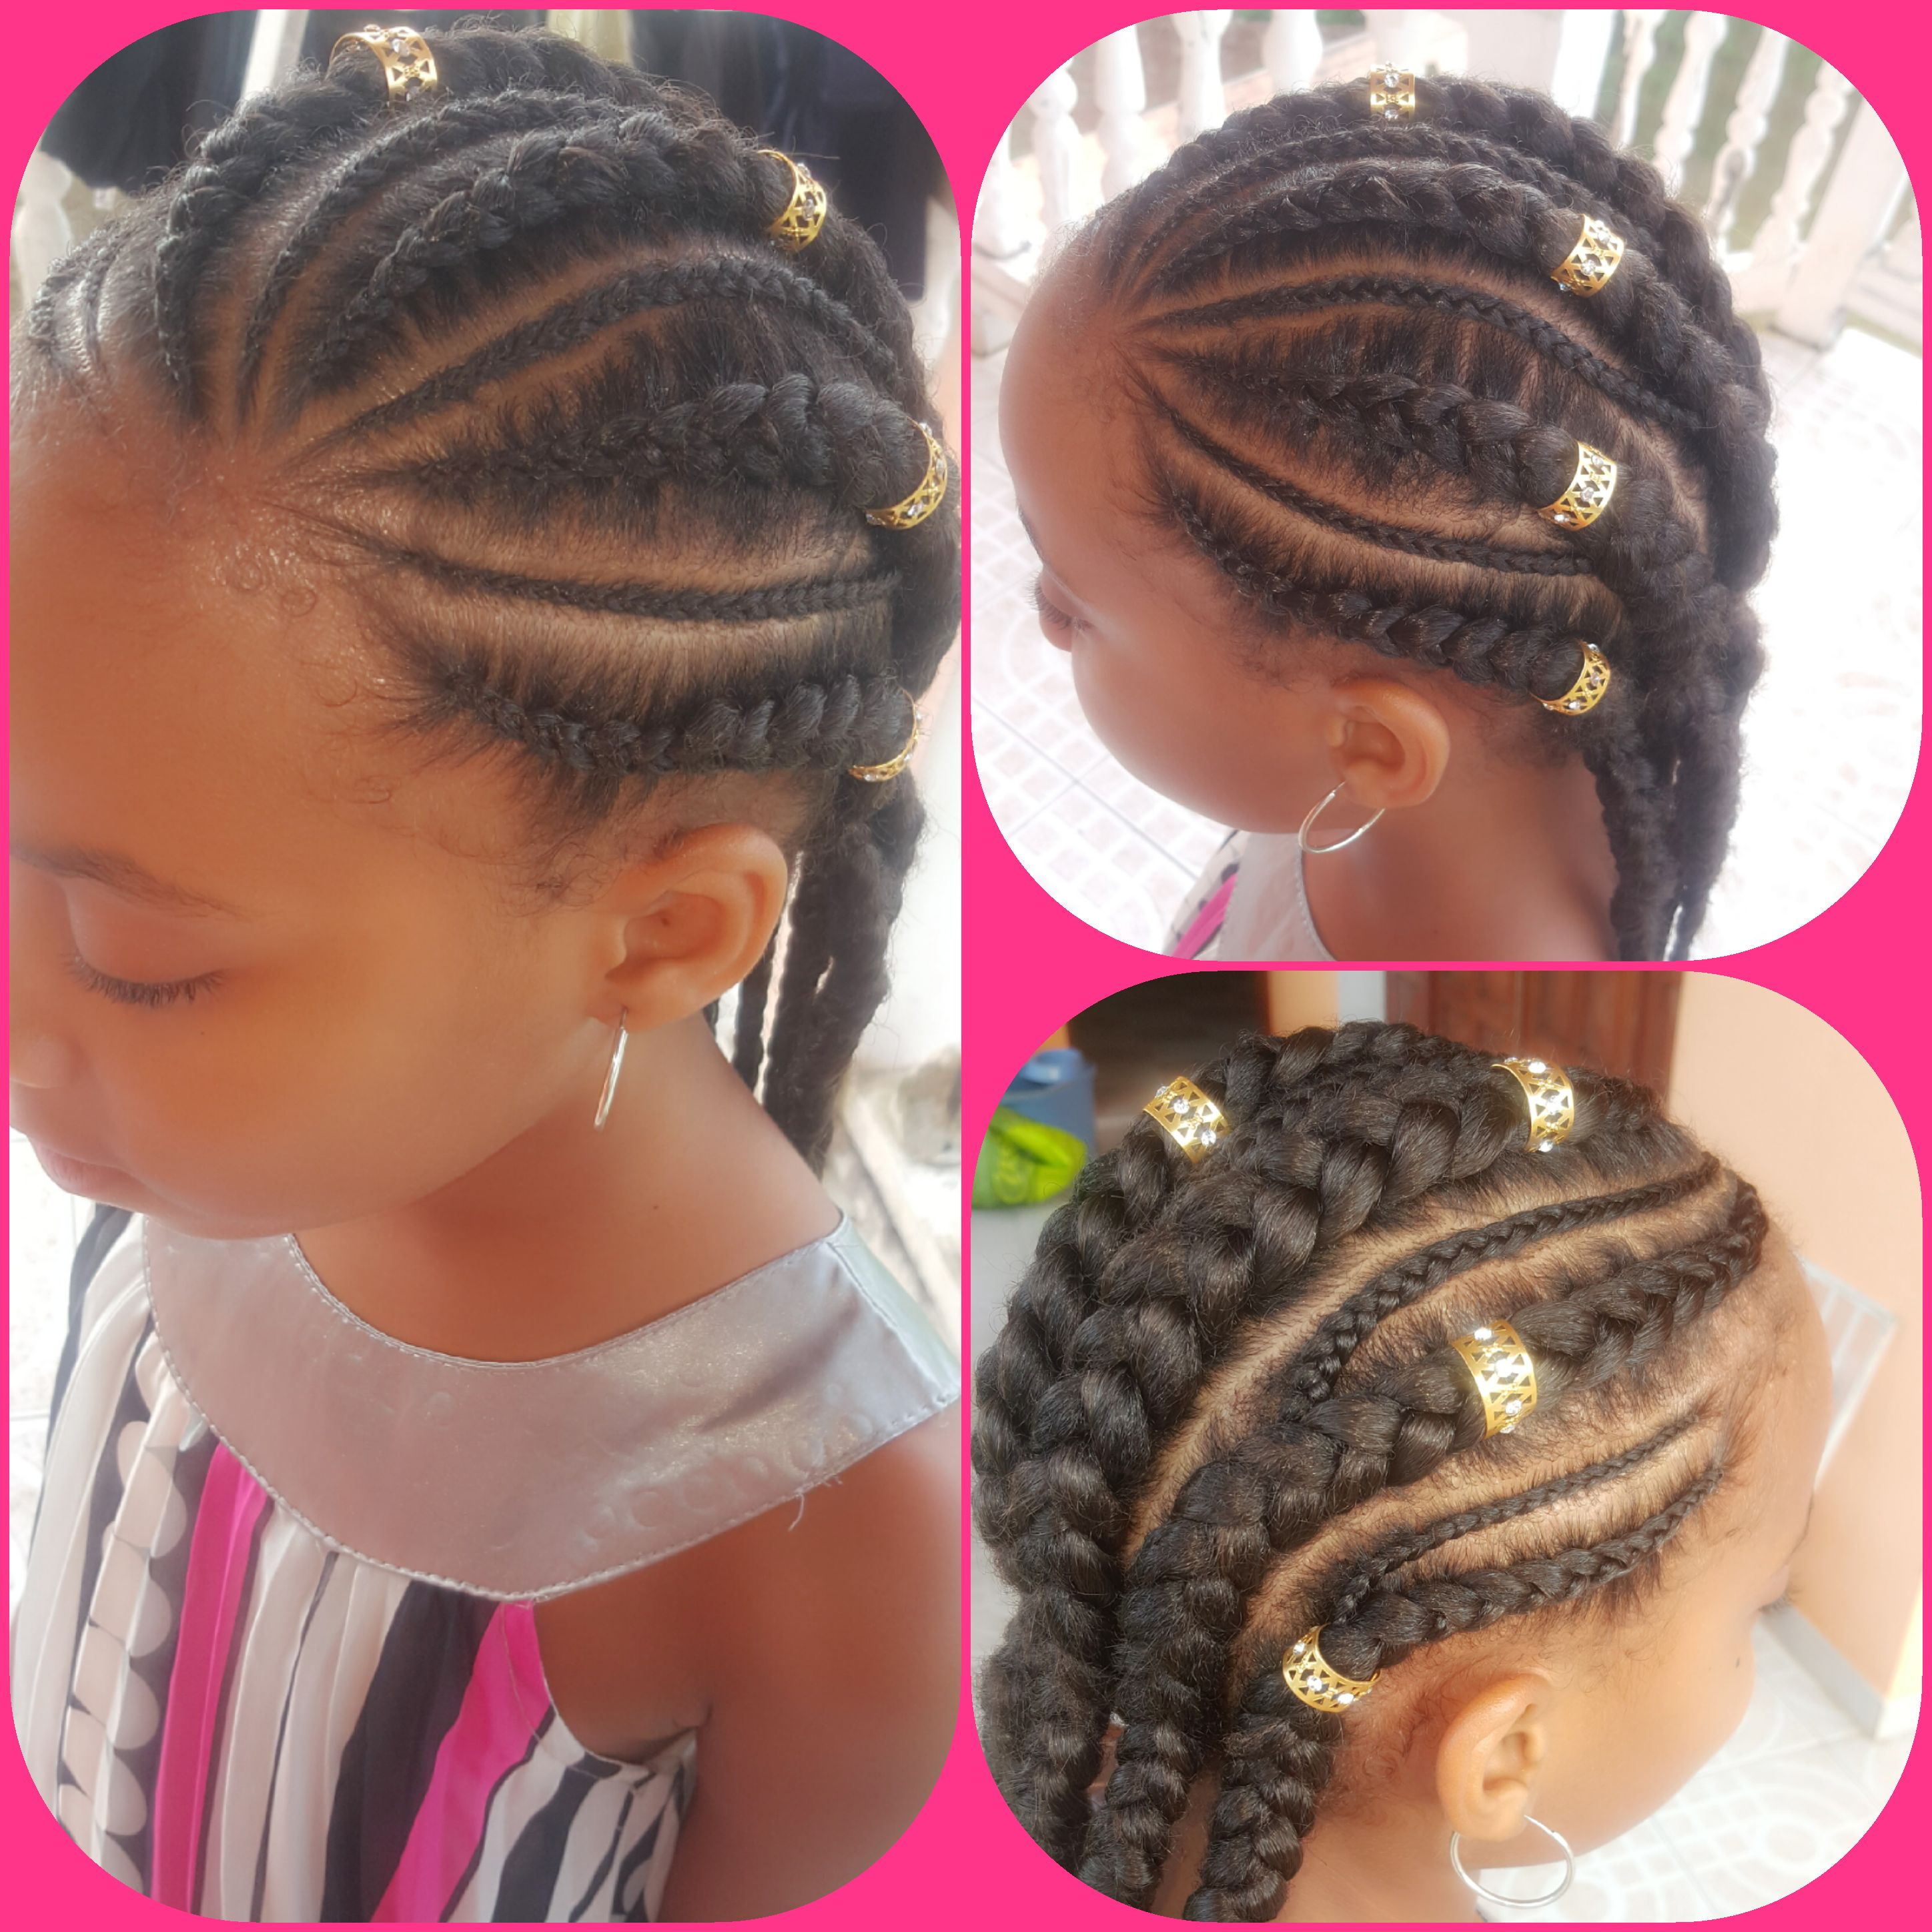 salon de coiffure afro tresse tresses box braids crochet braids vanilles tissages paris 75 77 78 91 92 93 94 95 HYLCJWLE